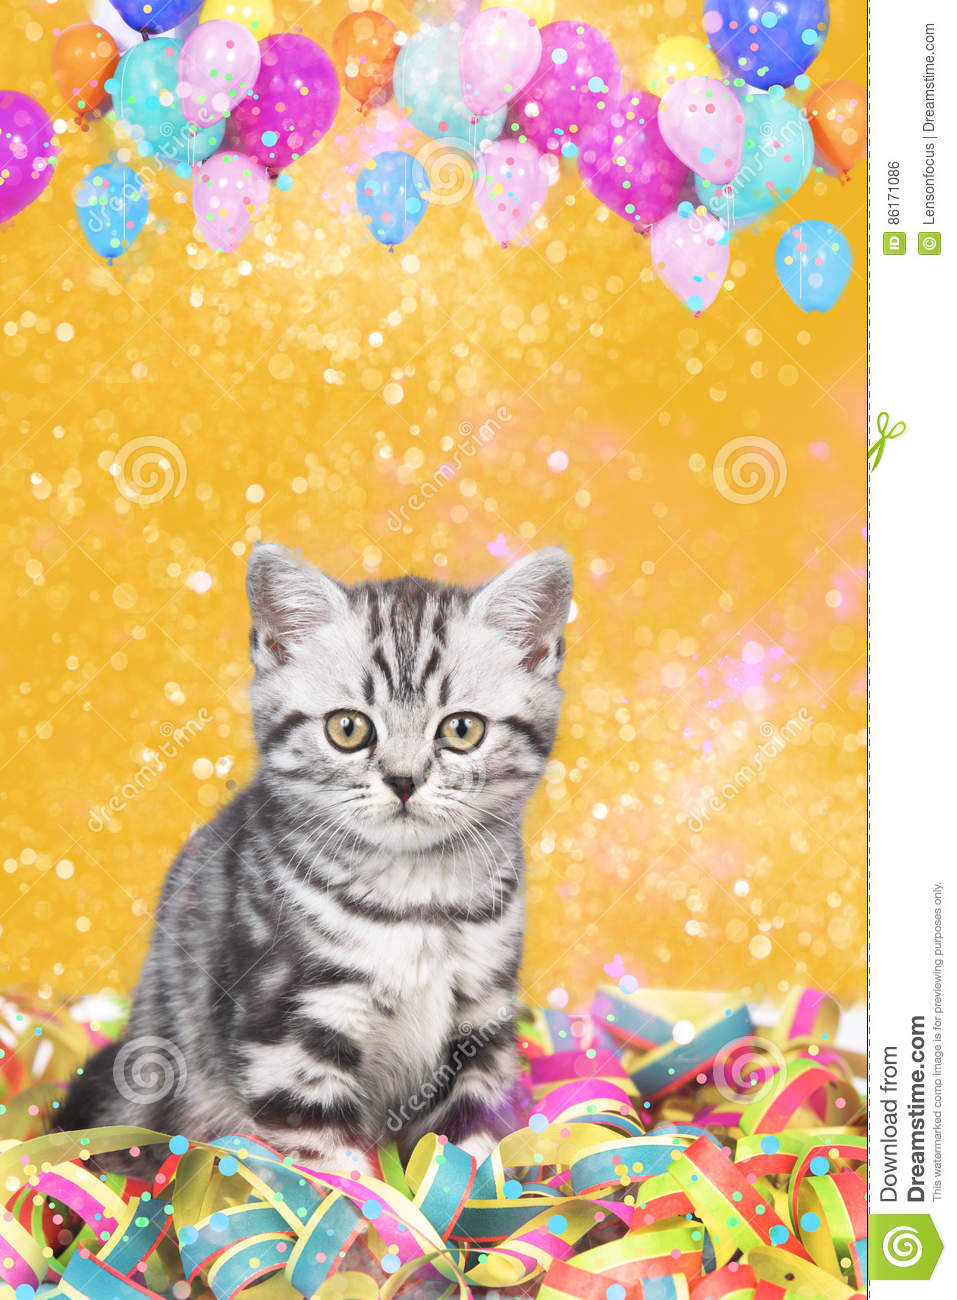 British shorthair cat with streamers